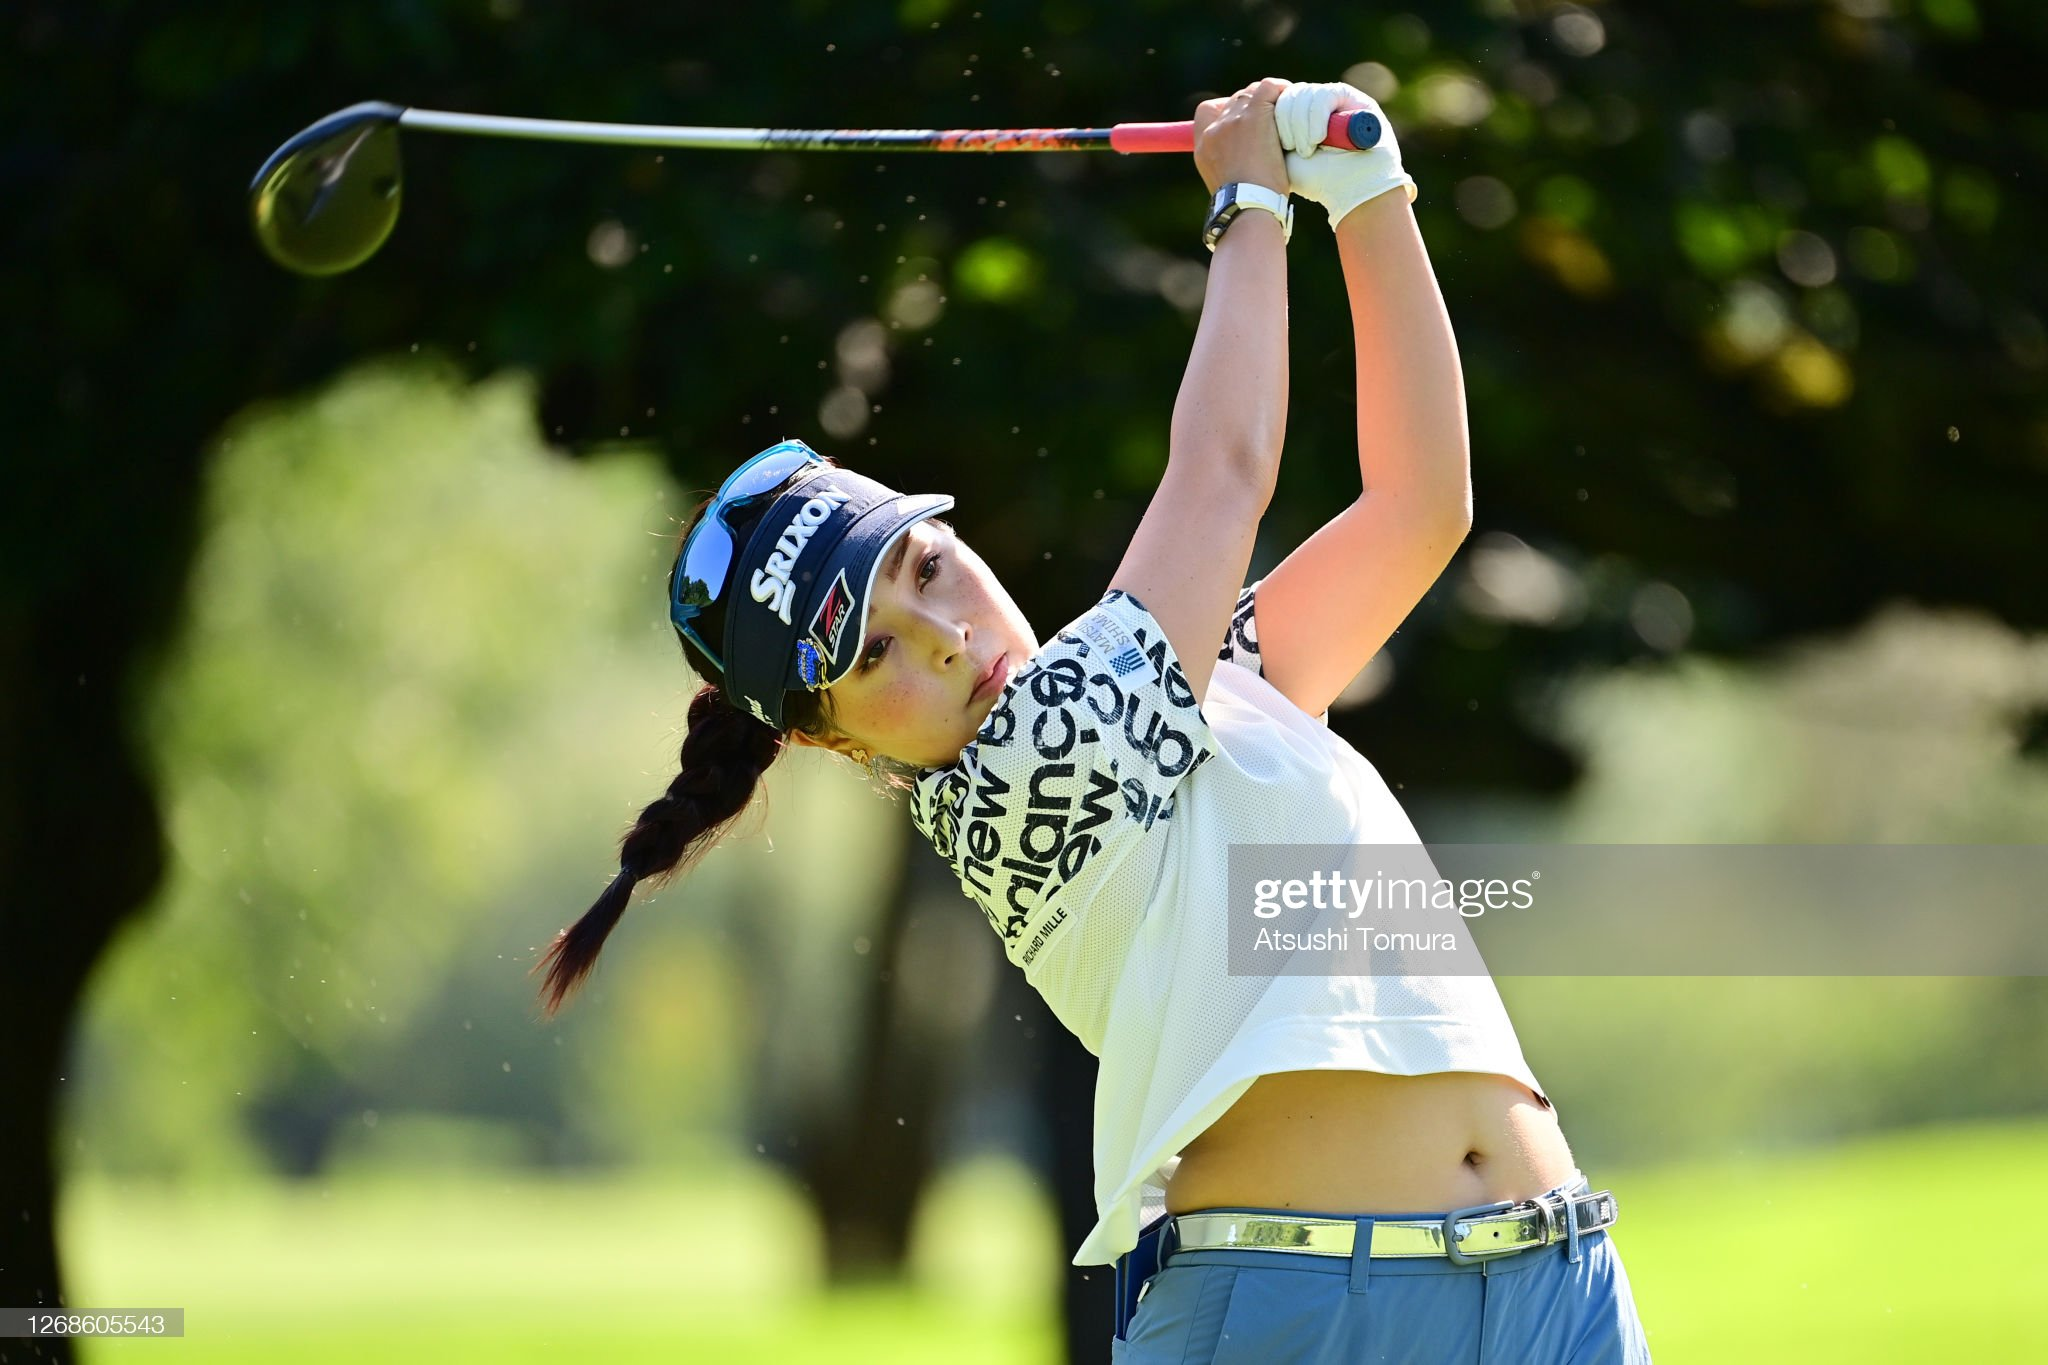 https://media.gettyimages.com/photos/serena-aoki-of-japan-plays-a-shot-on-the-3rd-hole-during-a-practice-picture-id1268605543?s=2048x2048